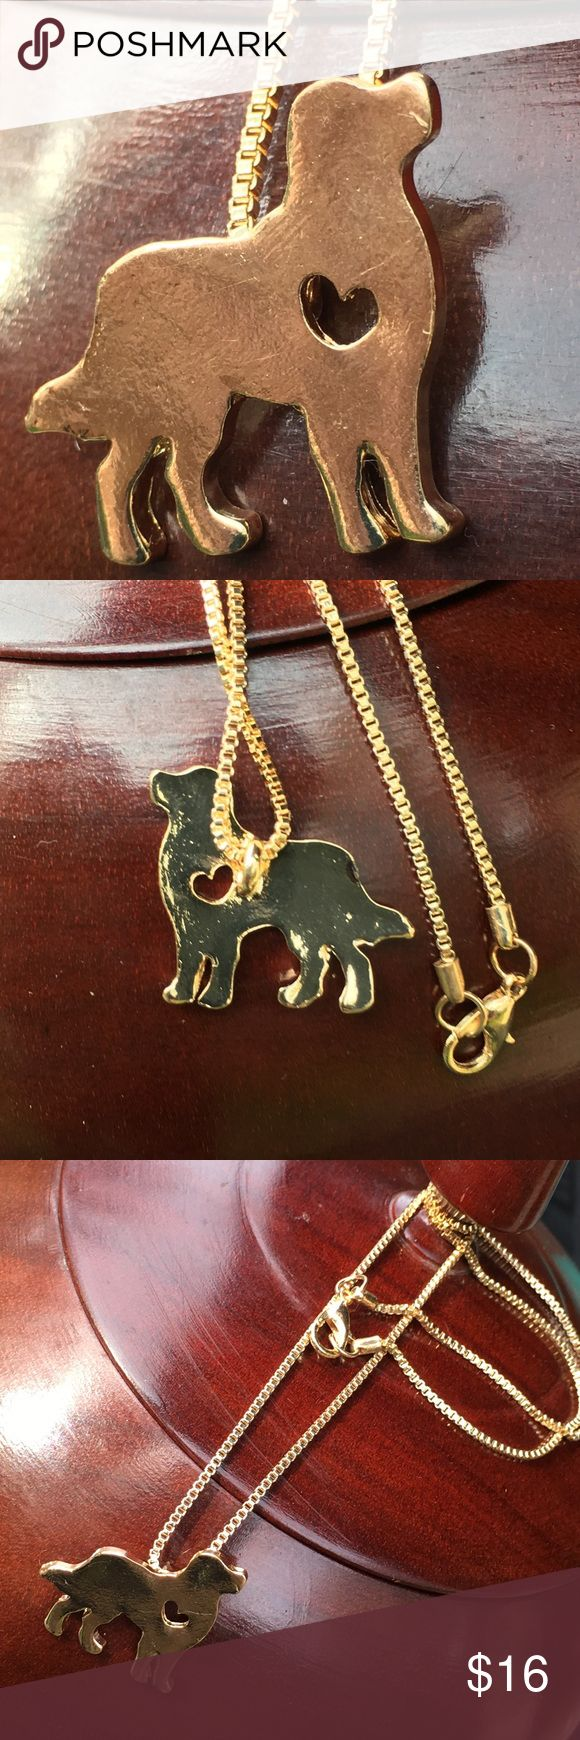 Gold Golden retriever ❤️️ love Adorable doggie necklace. On a box chain.  Perfect gift for any dog lover. love ❤️ necklace. This silhouette can represent many 🐶 breeds golden retriever, yellow Labrador,  beagle, hound, retriever,  mastiff, or your favorite mutt. Boutique items - prices are firm unless bundled. Jewelry Necklaces